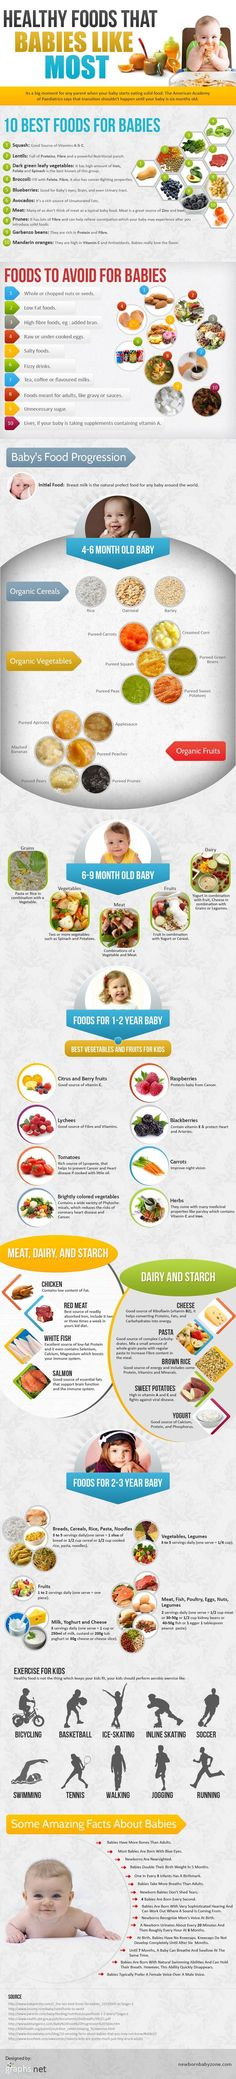 Best foods for babies!